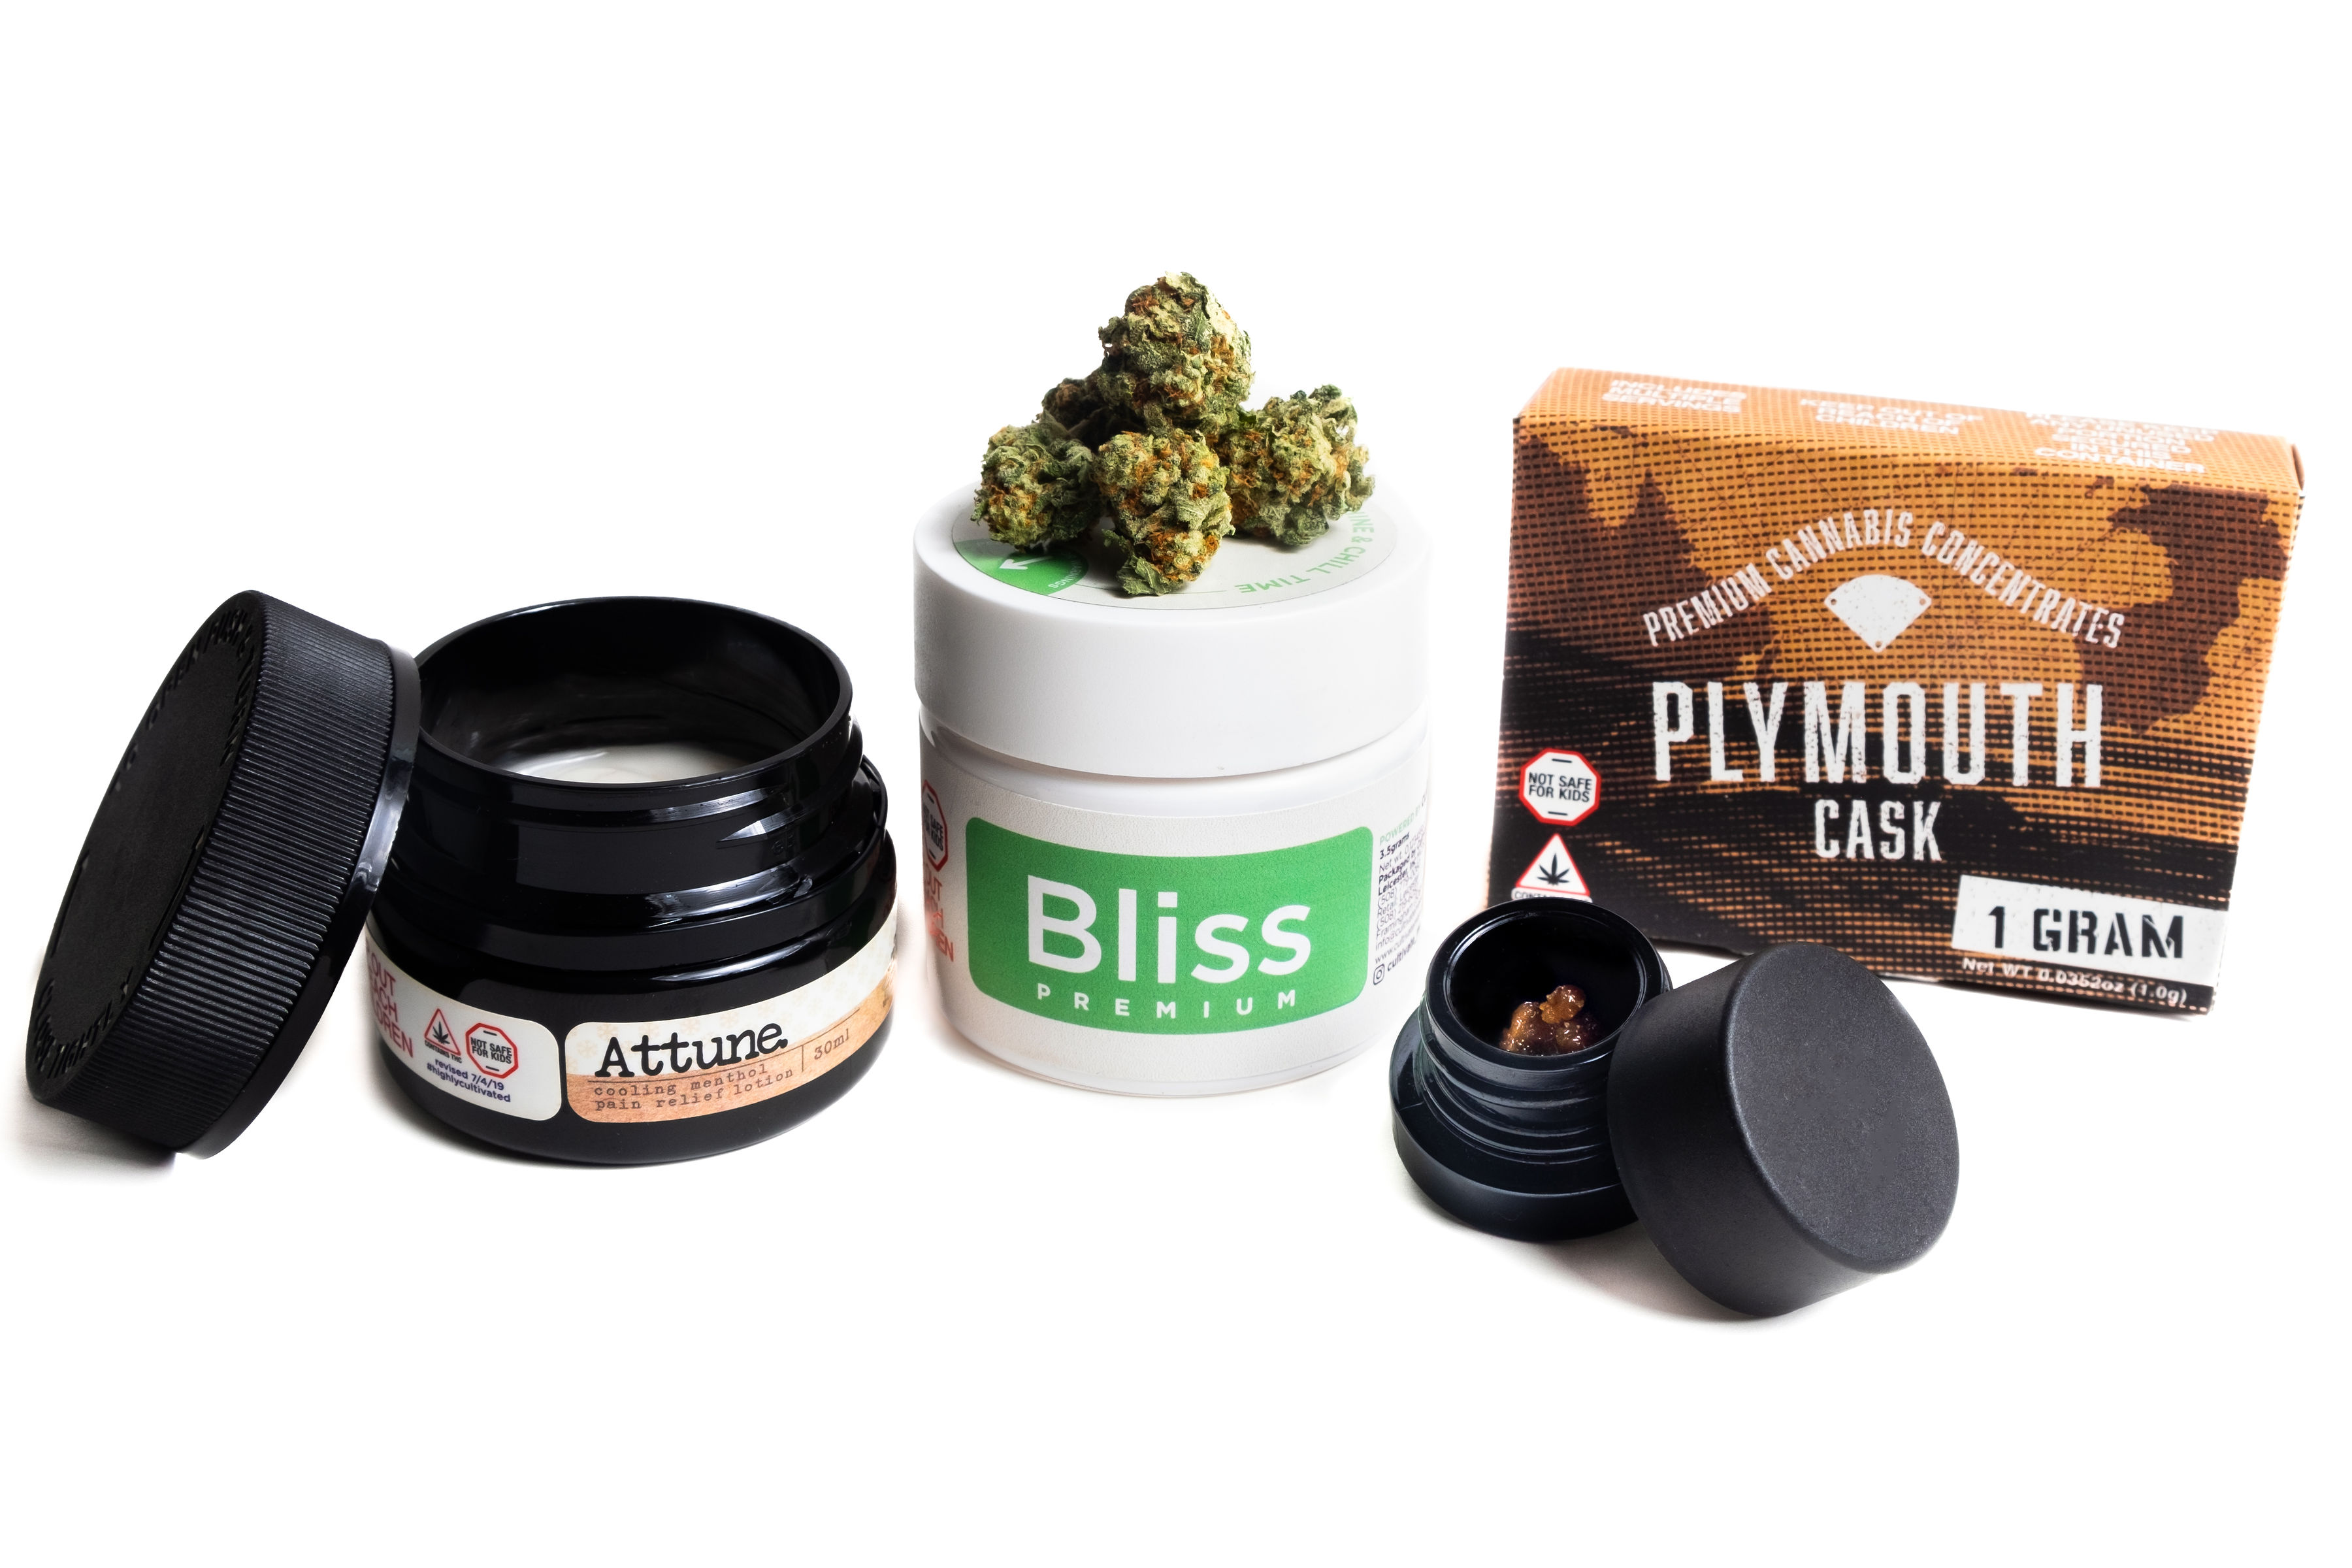 A broad selection of quality cannabis products